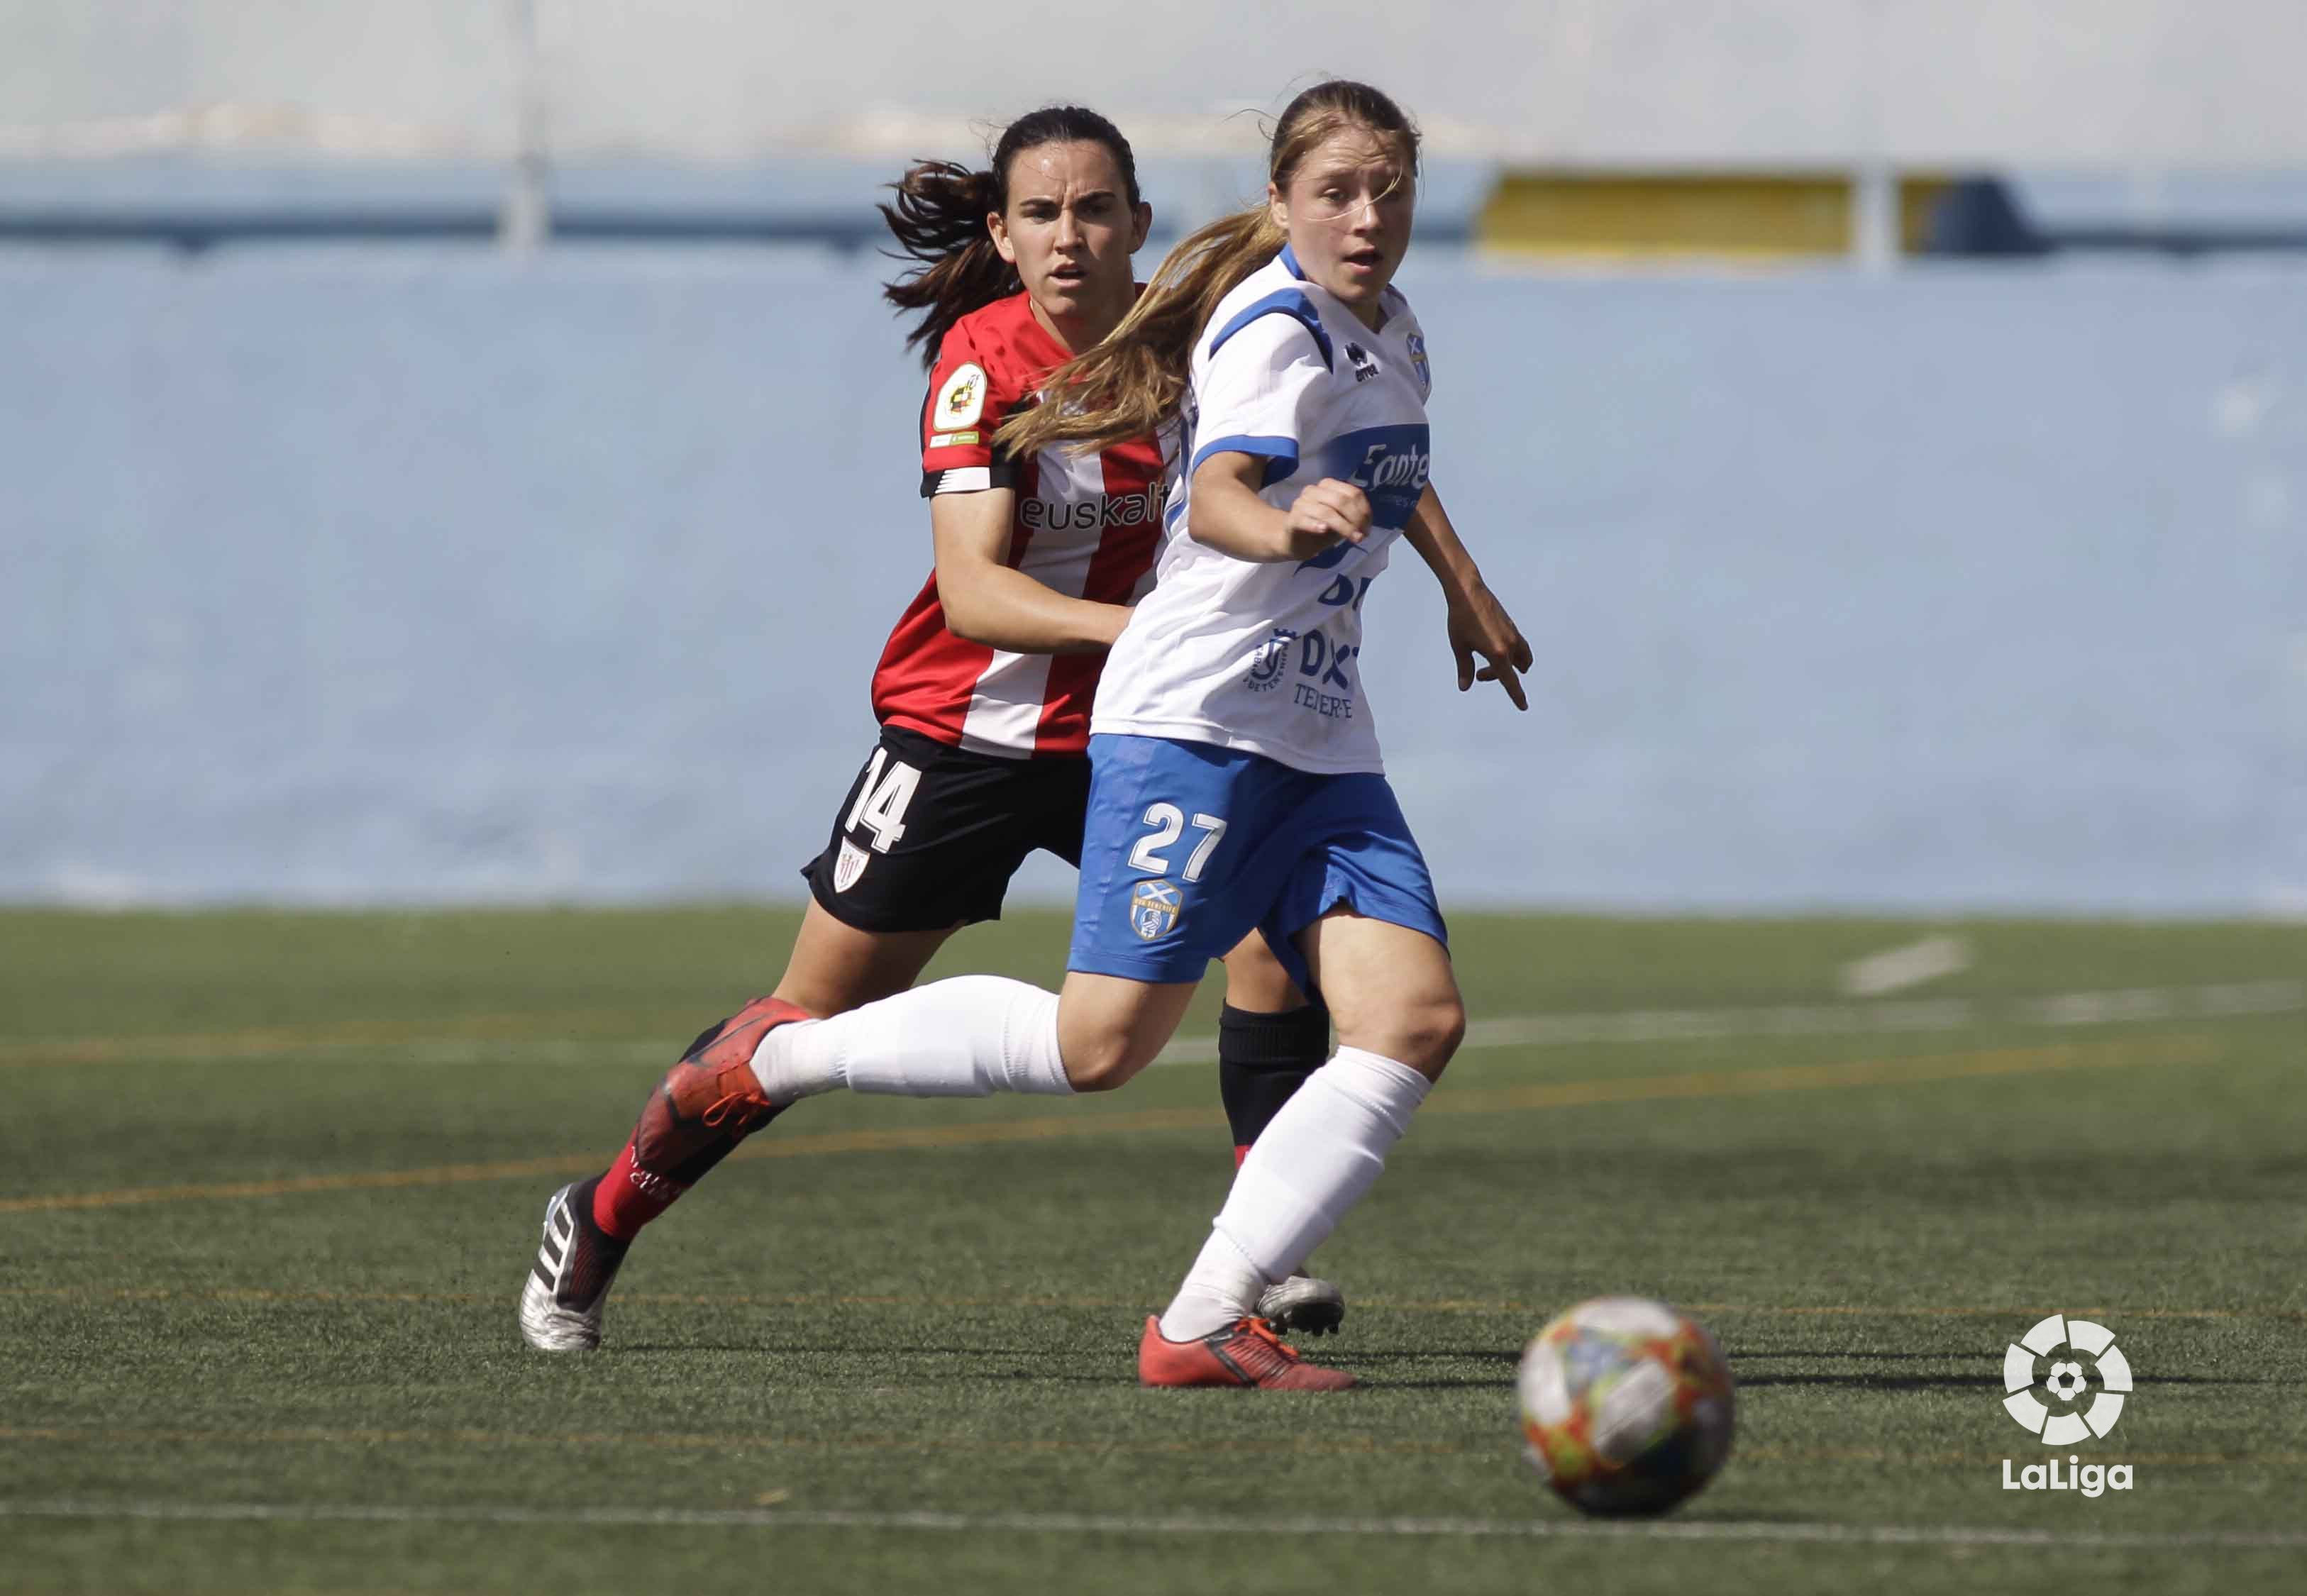 Unprecedented match in the Copa de la Reina